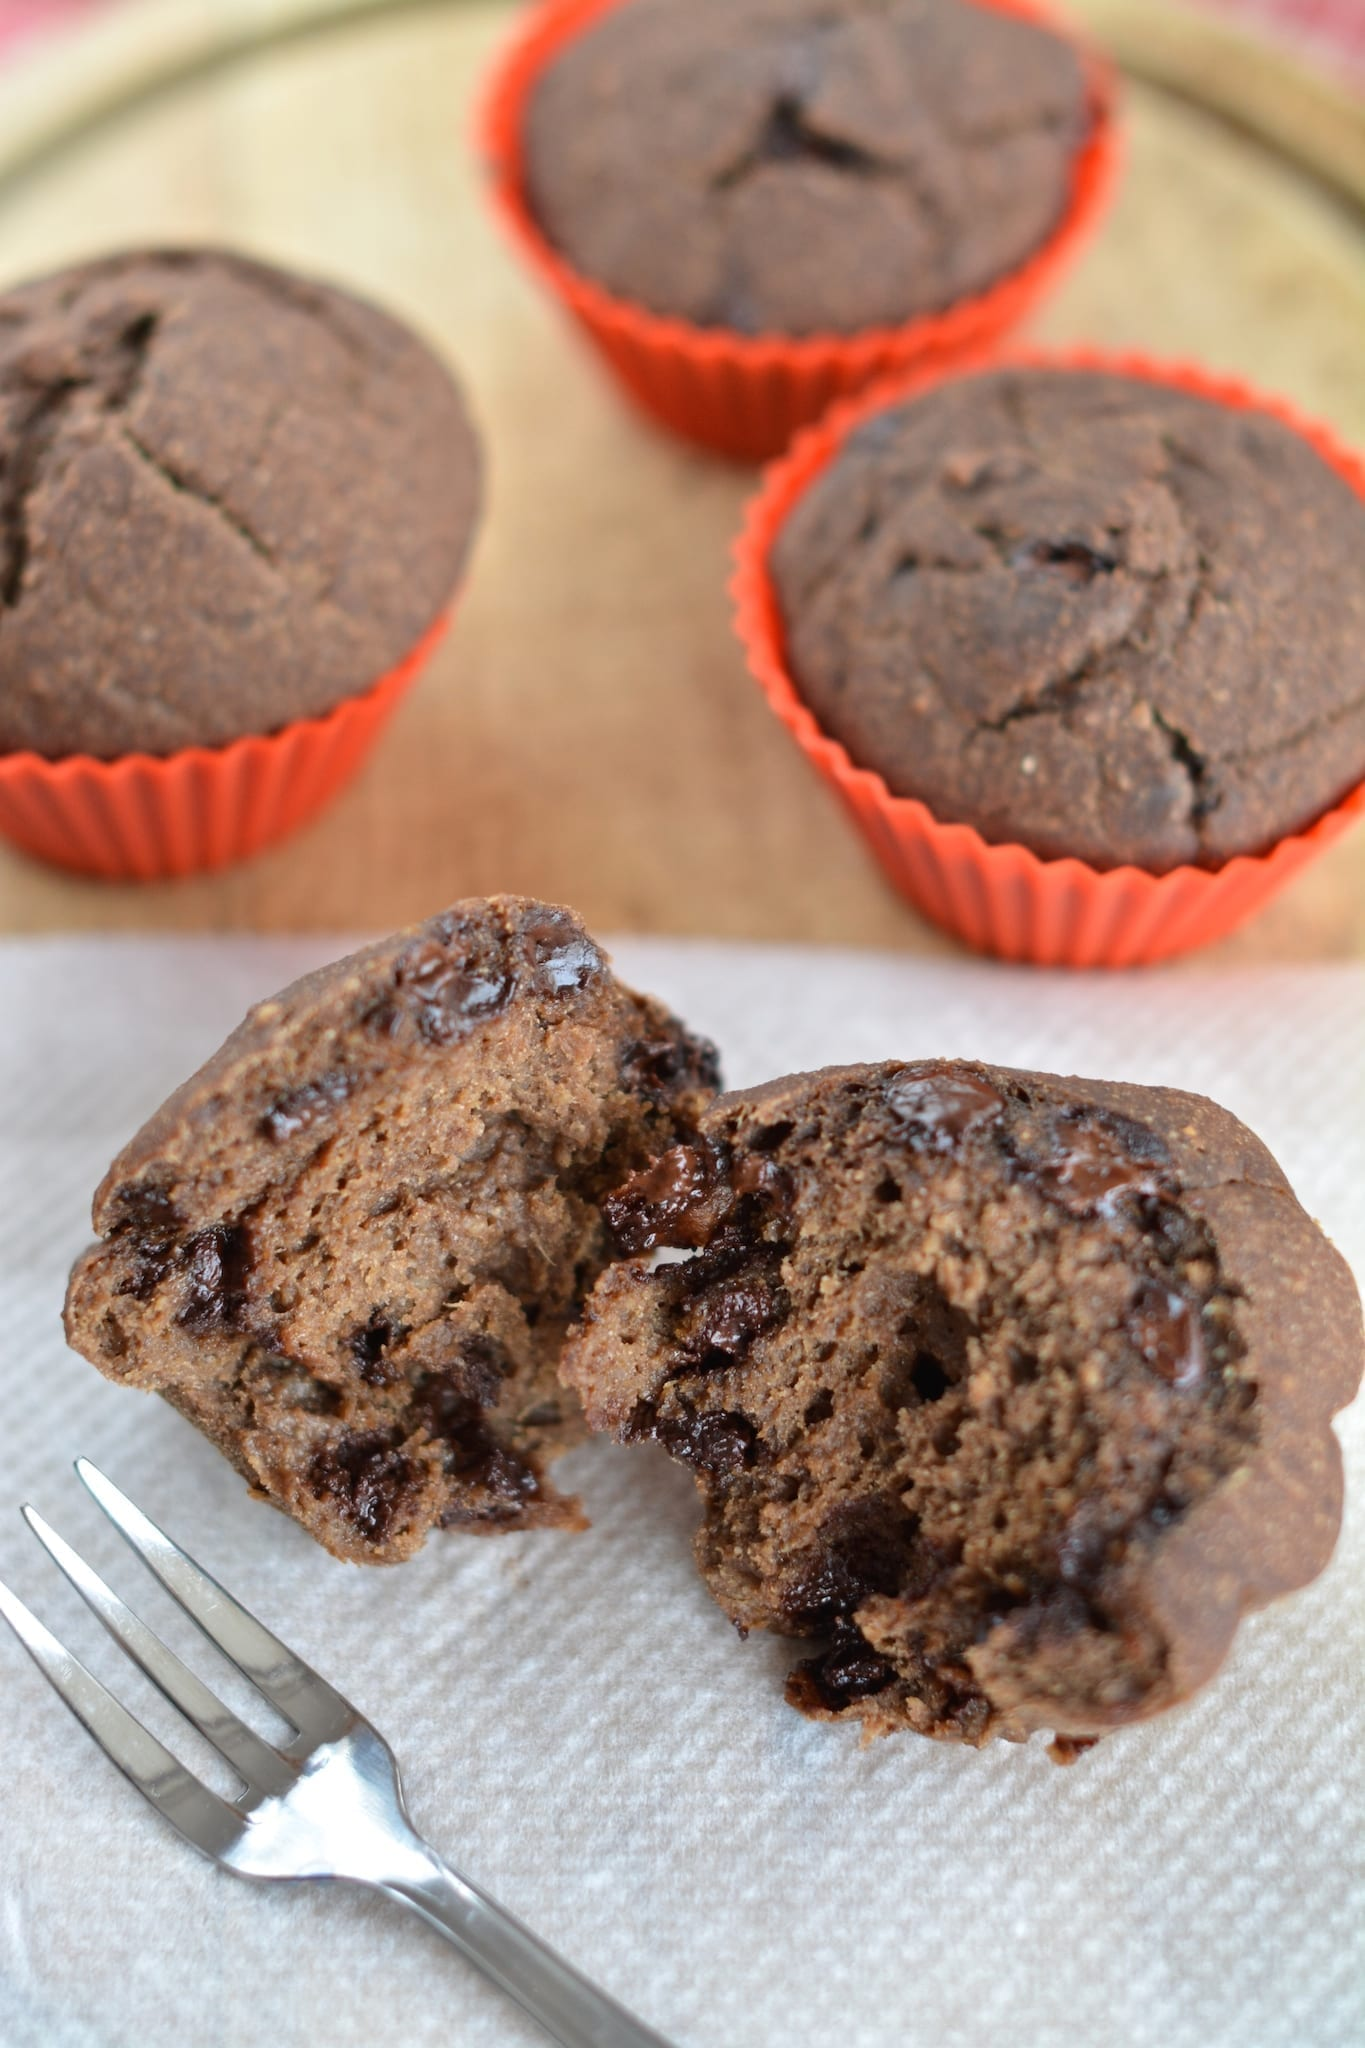 Banana-Mango-Chocolate Muffins, Date-Free and Sugar-Free